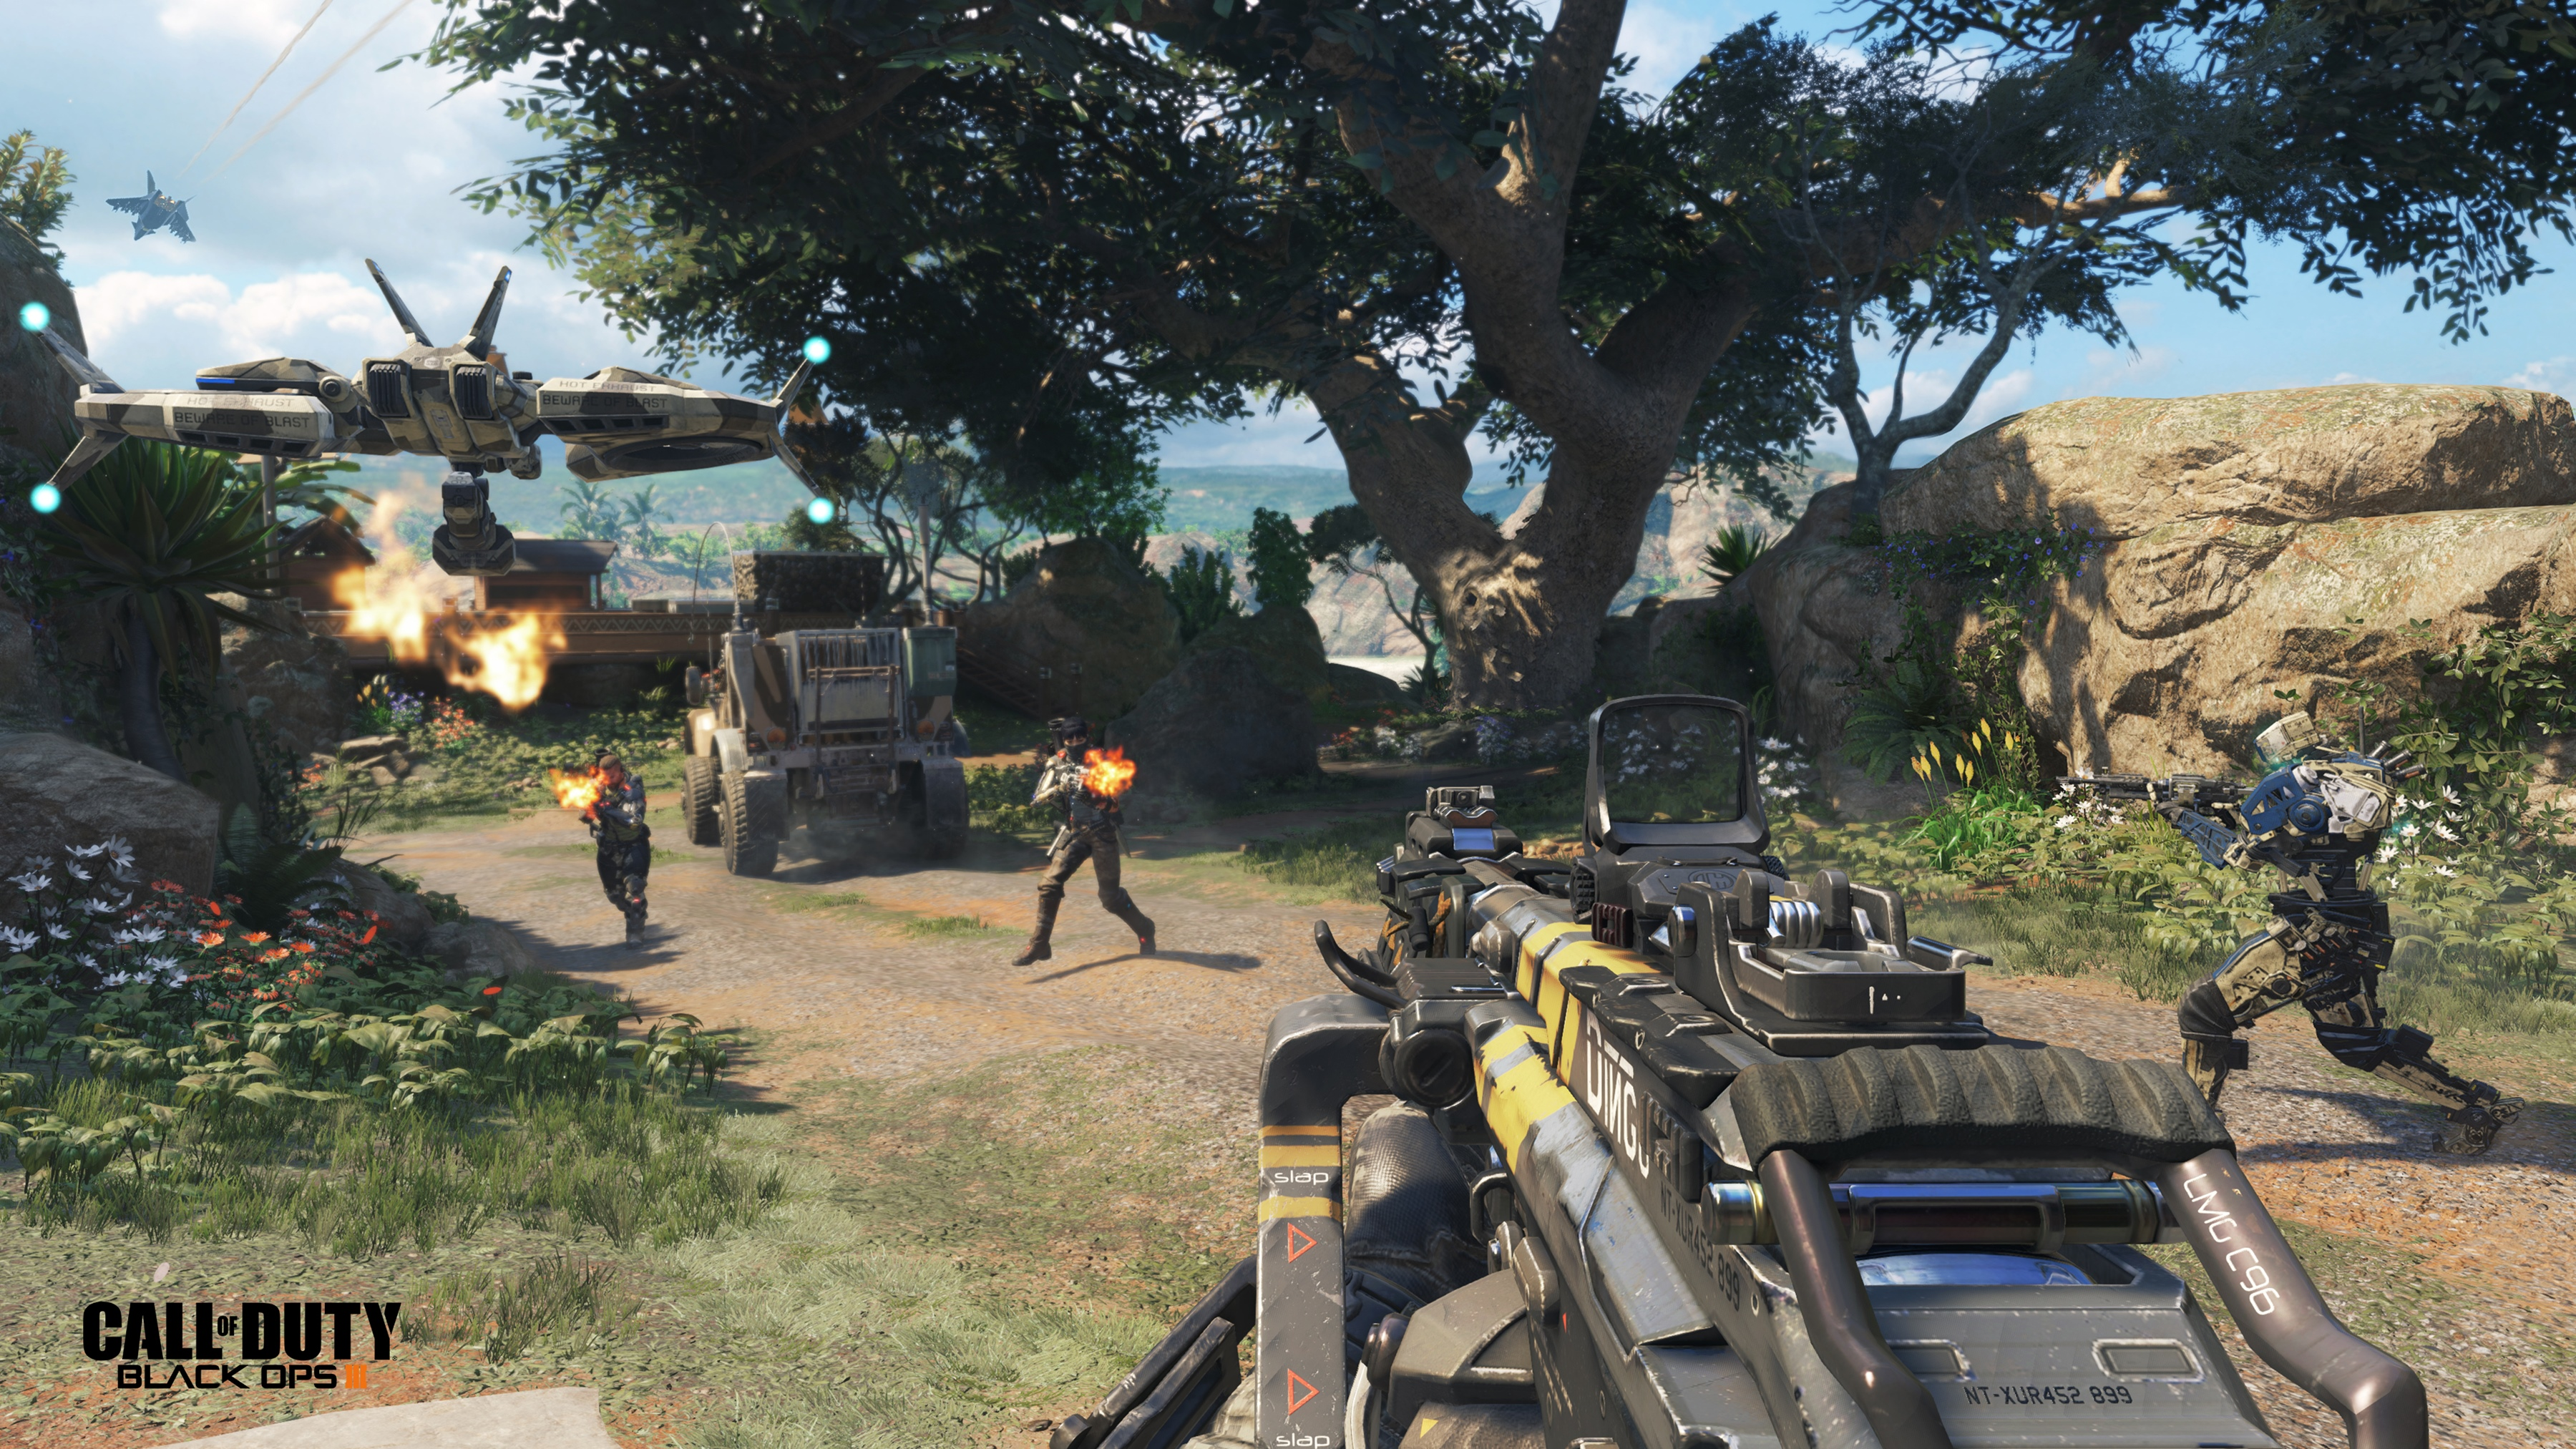 Call of Duty Black Ops 3 Graphics Settings for Beta Build on PC Allow 3600x2025